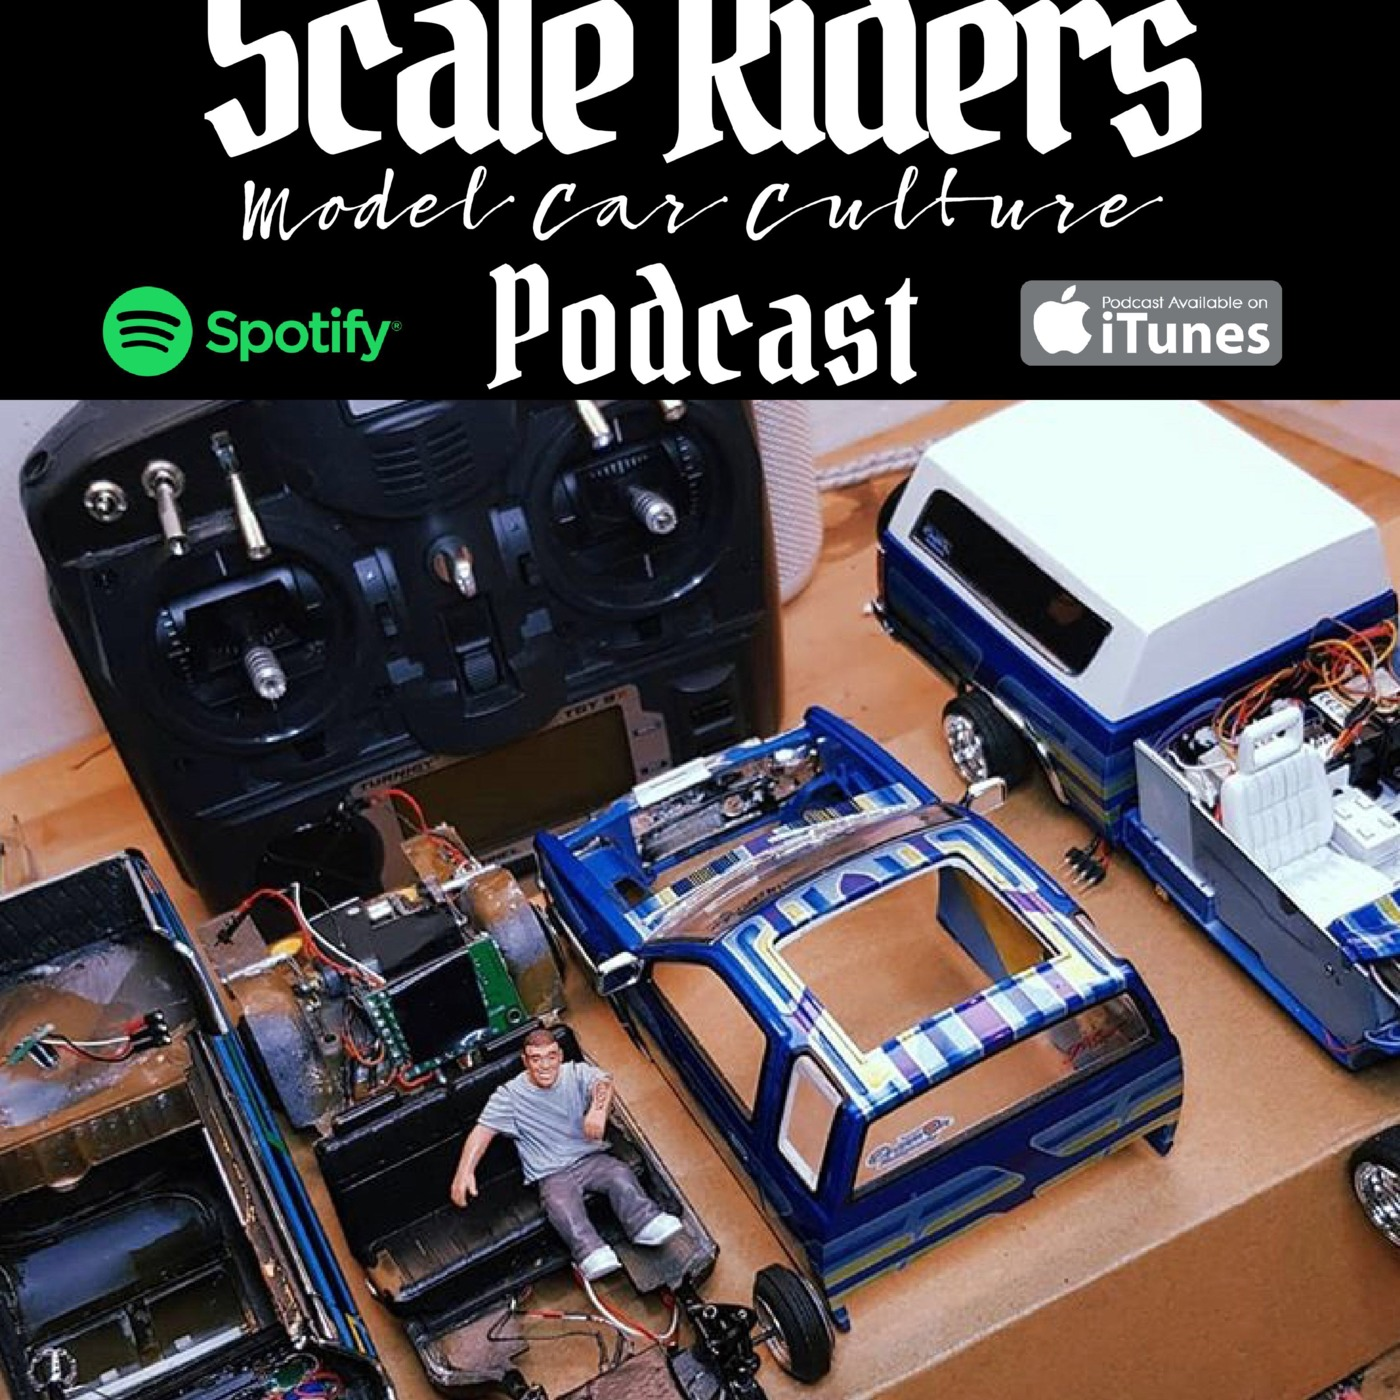 Episode 56: Jevries Scale Riders Model Car Culture podcast